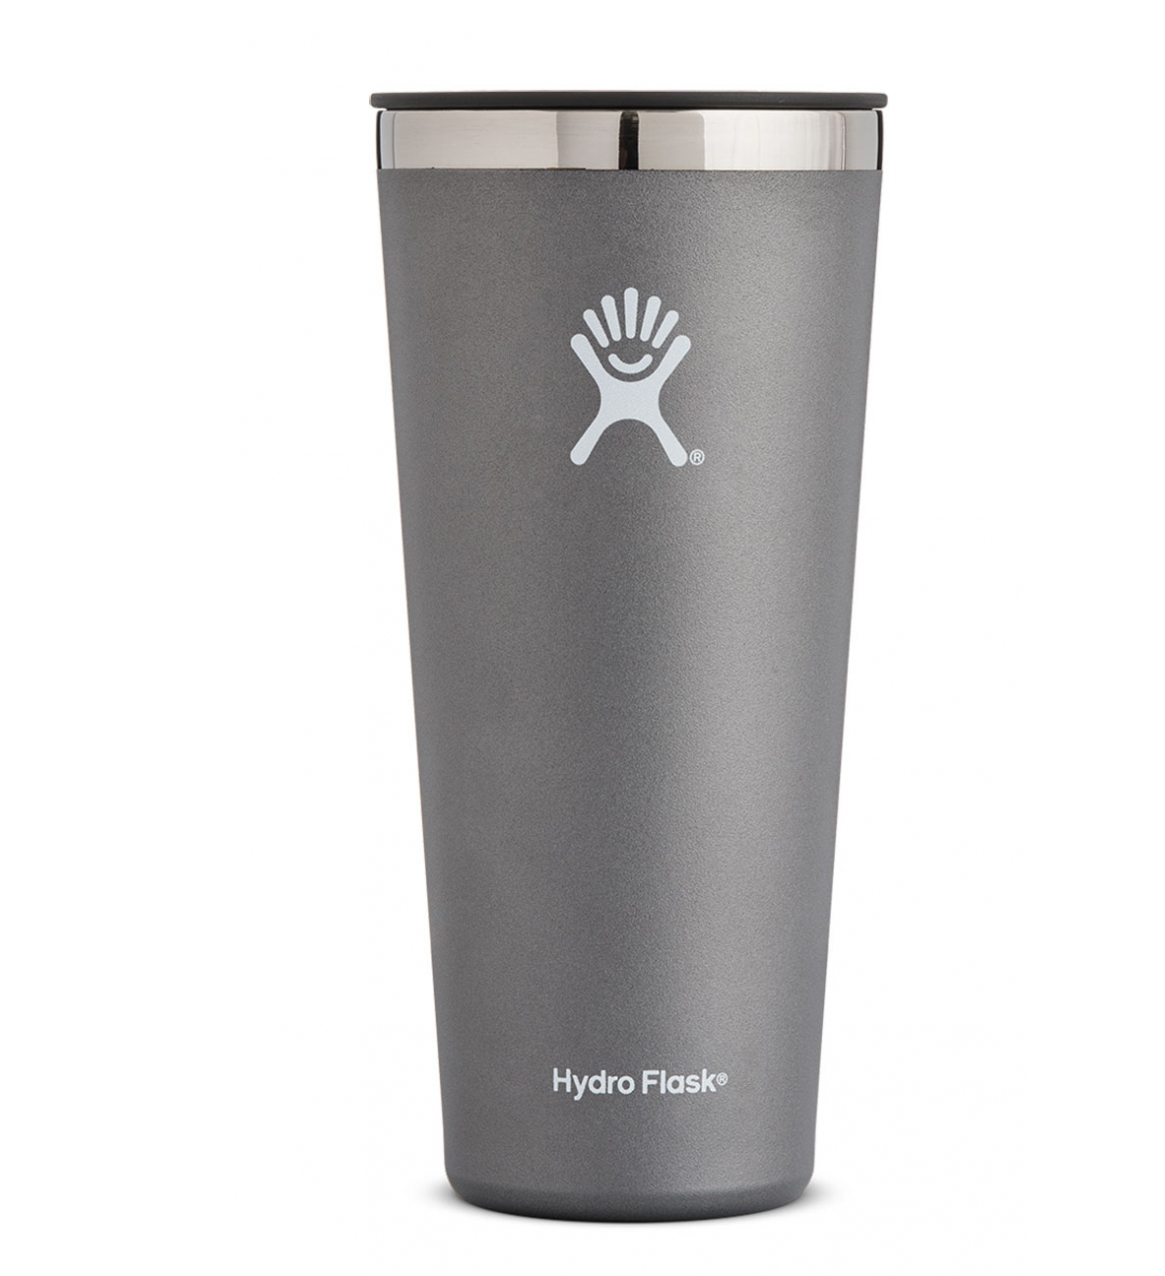 Hydro Flask: 32 oz Tumbler-Graphite